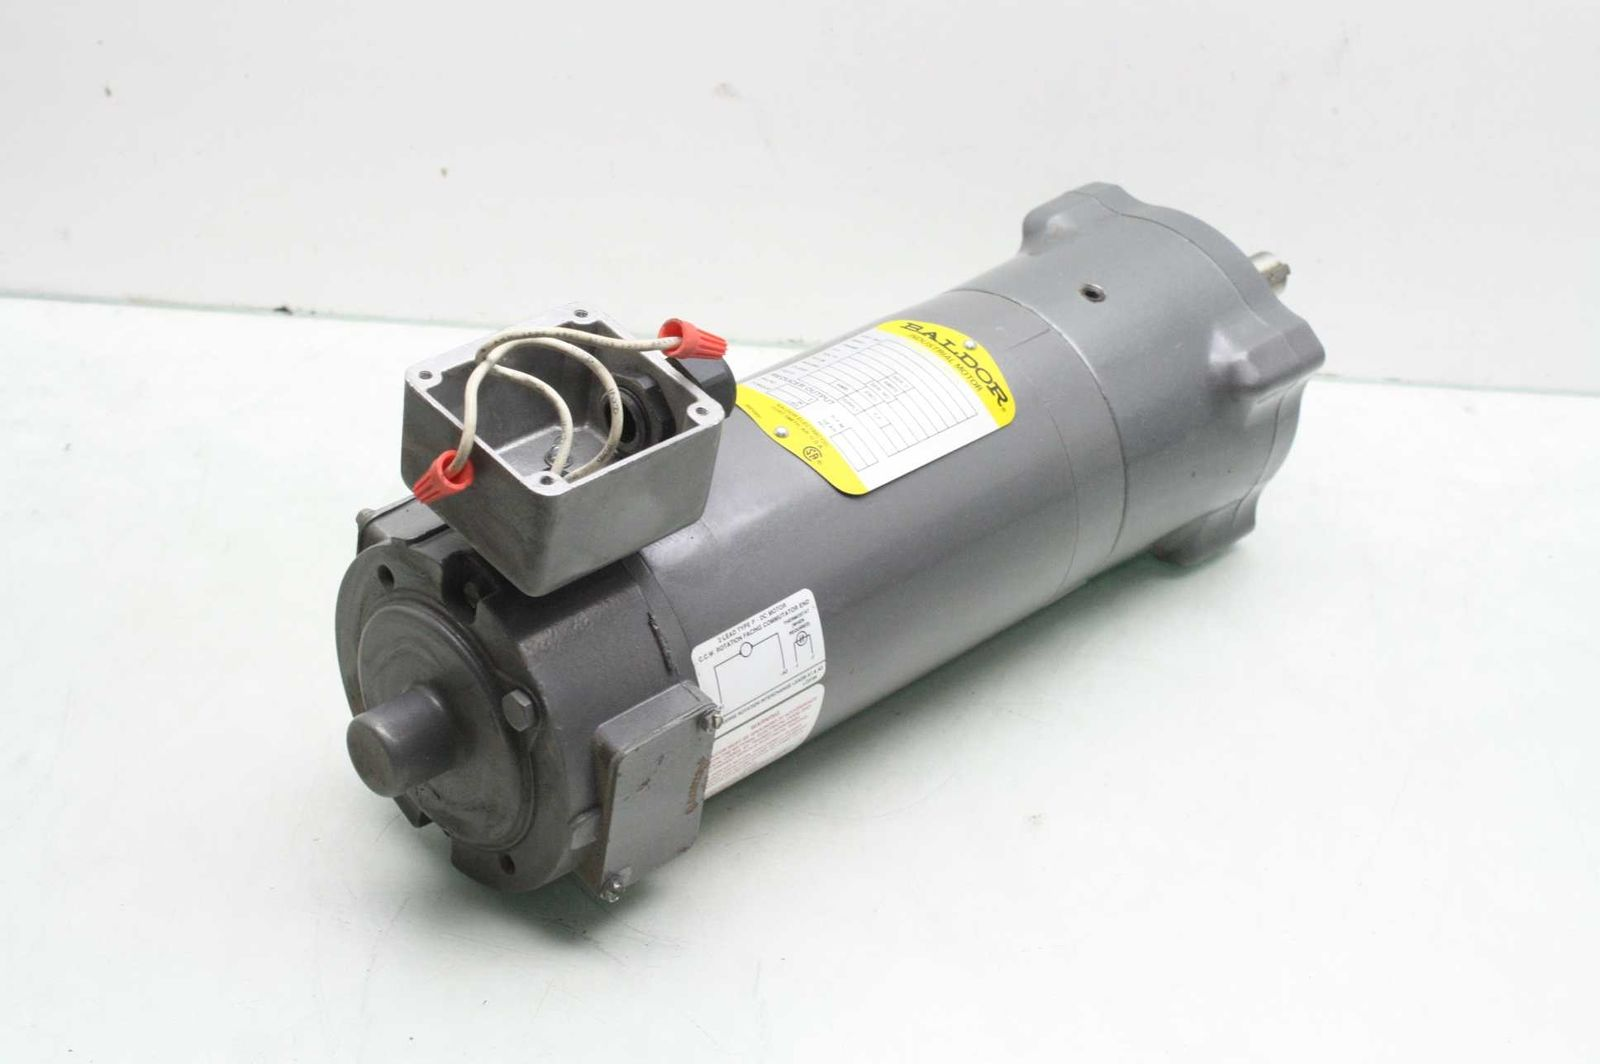 Baldor 33 2328z148g1k1 Industrial Motor 1 2 Hp Cat Gpp3348 Motors Out Of Stock